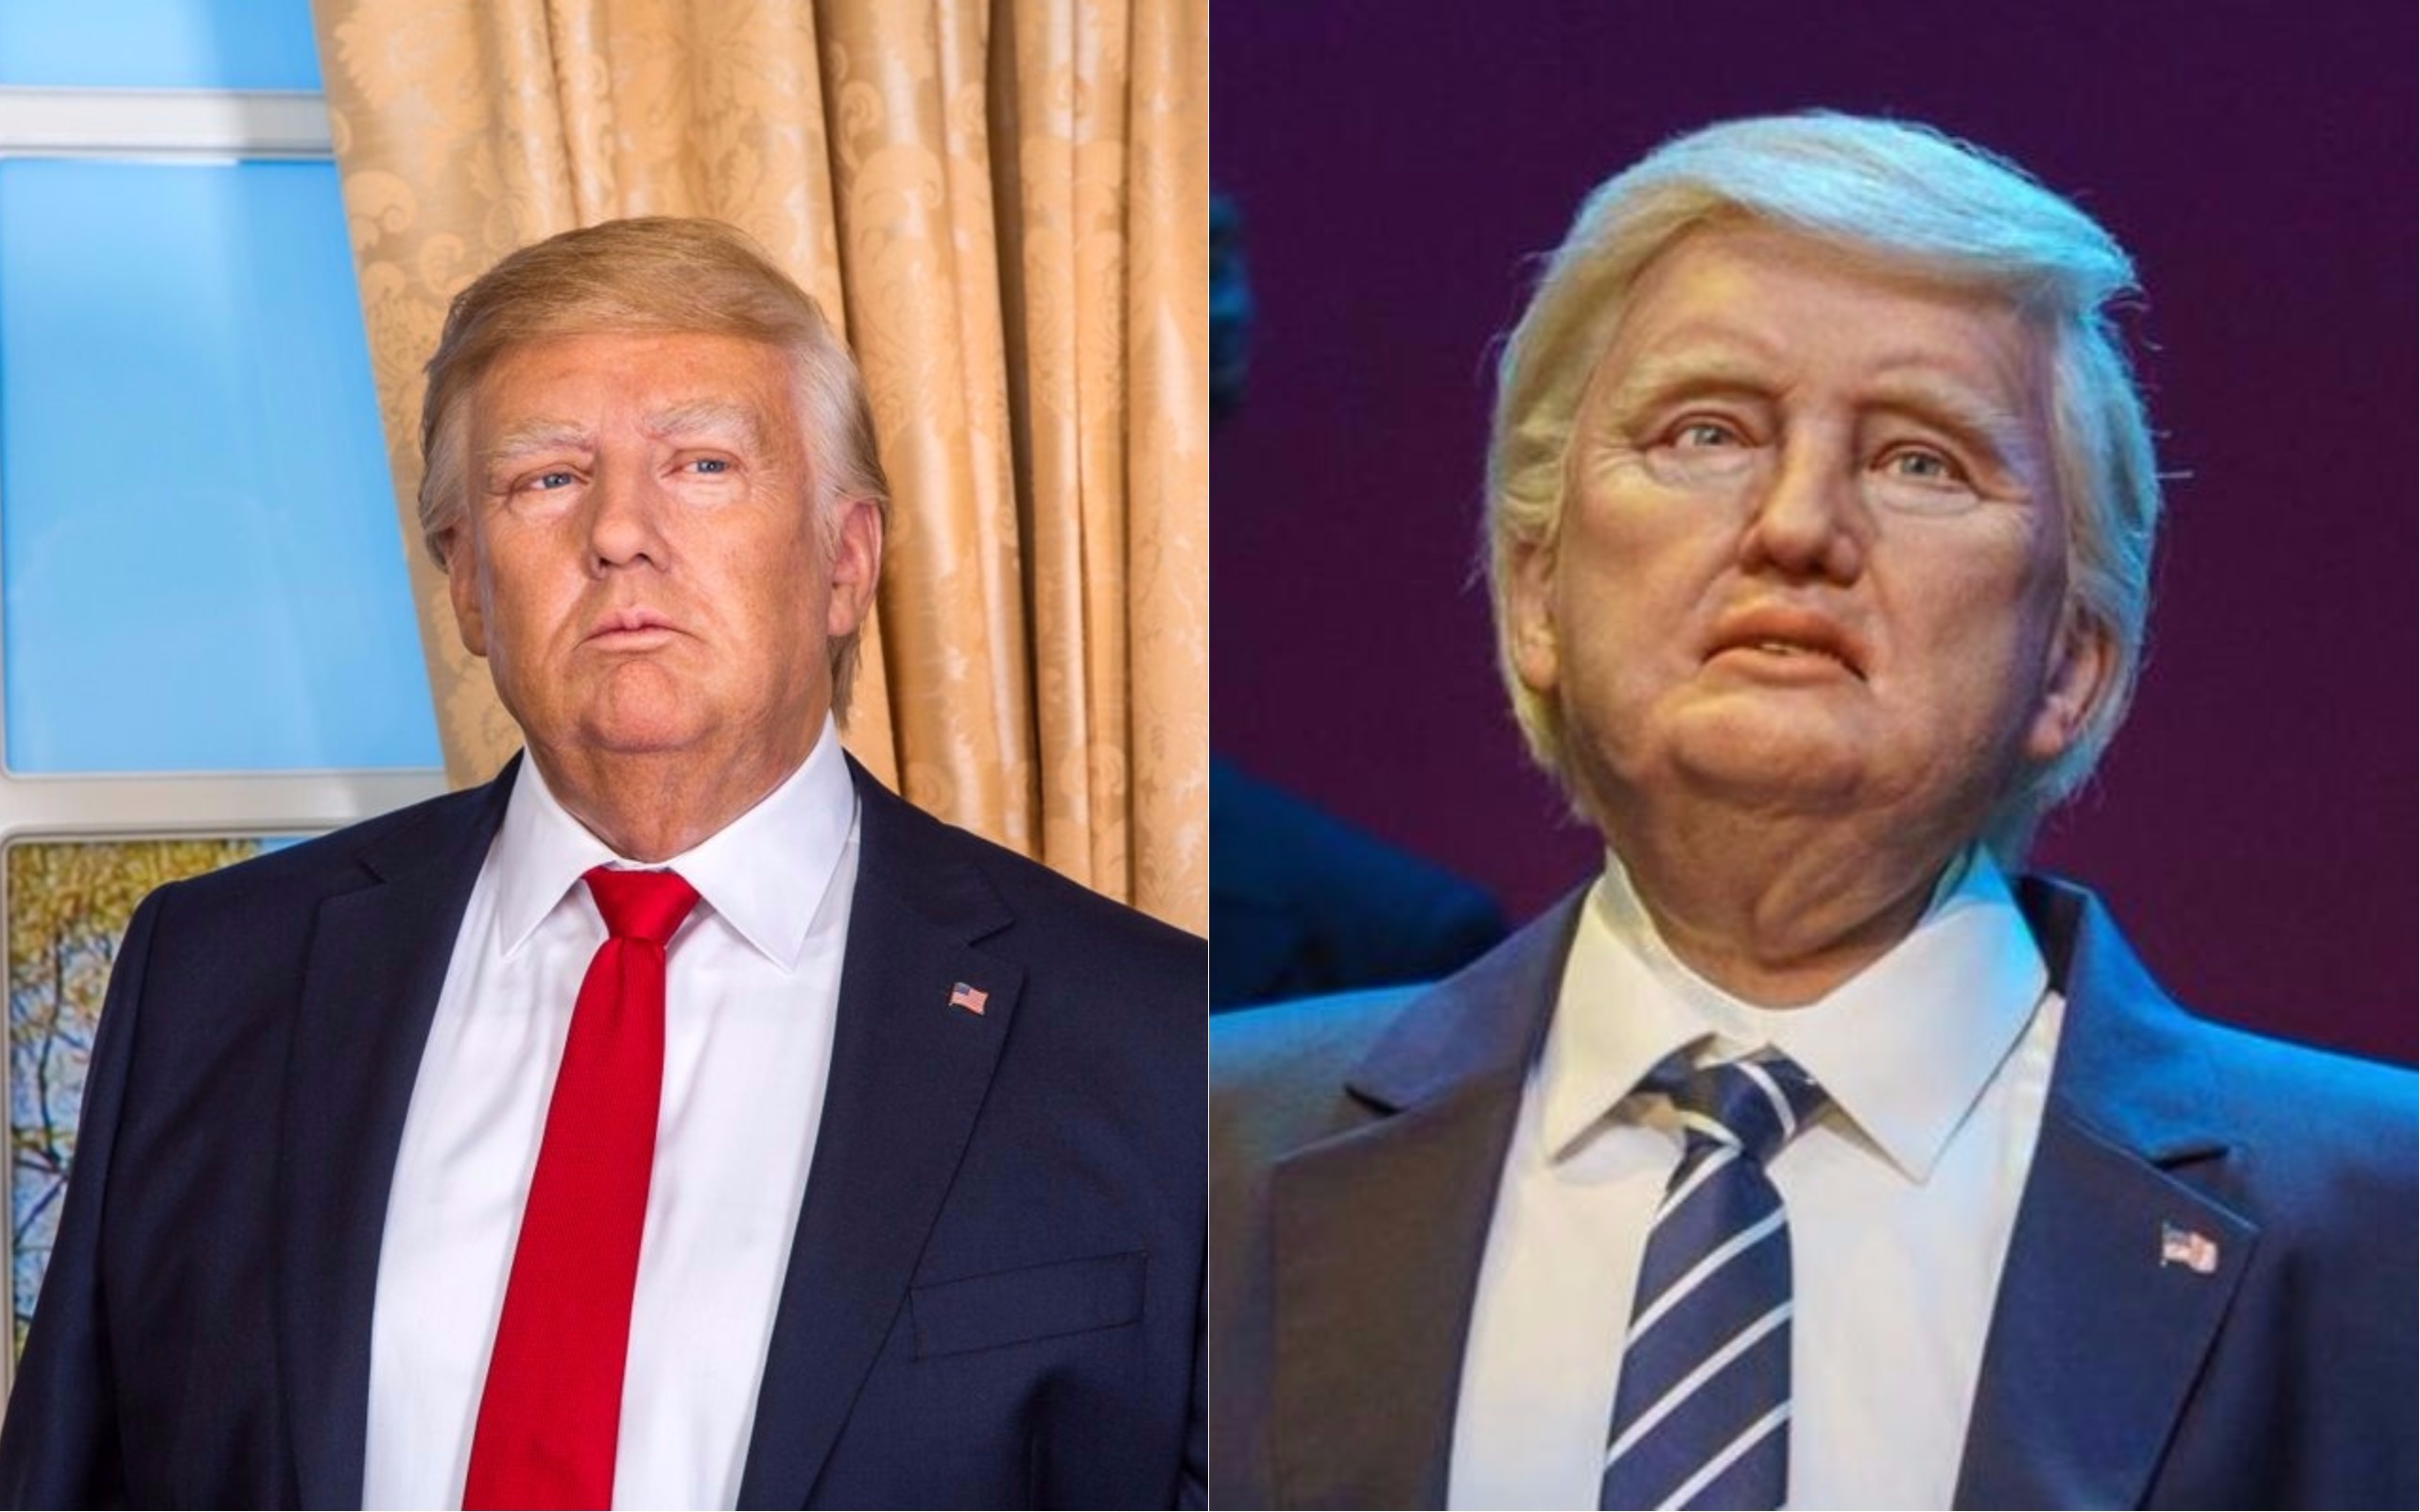 Madame Tussauds dropped a savage tweet to completely burn Disney's new Trump animatronic